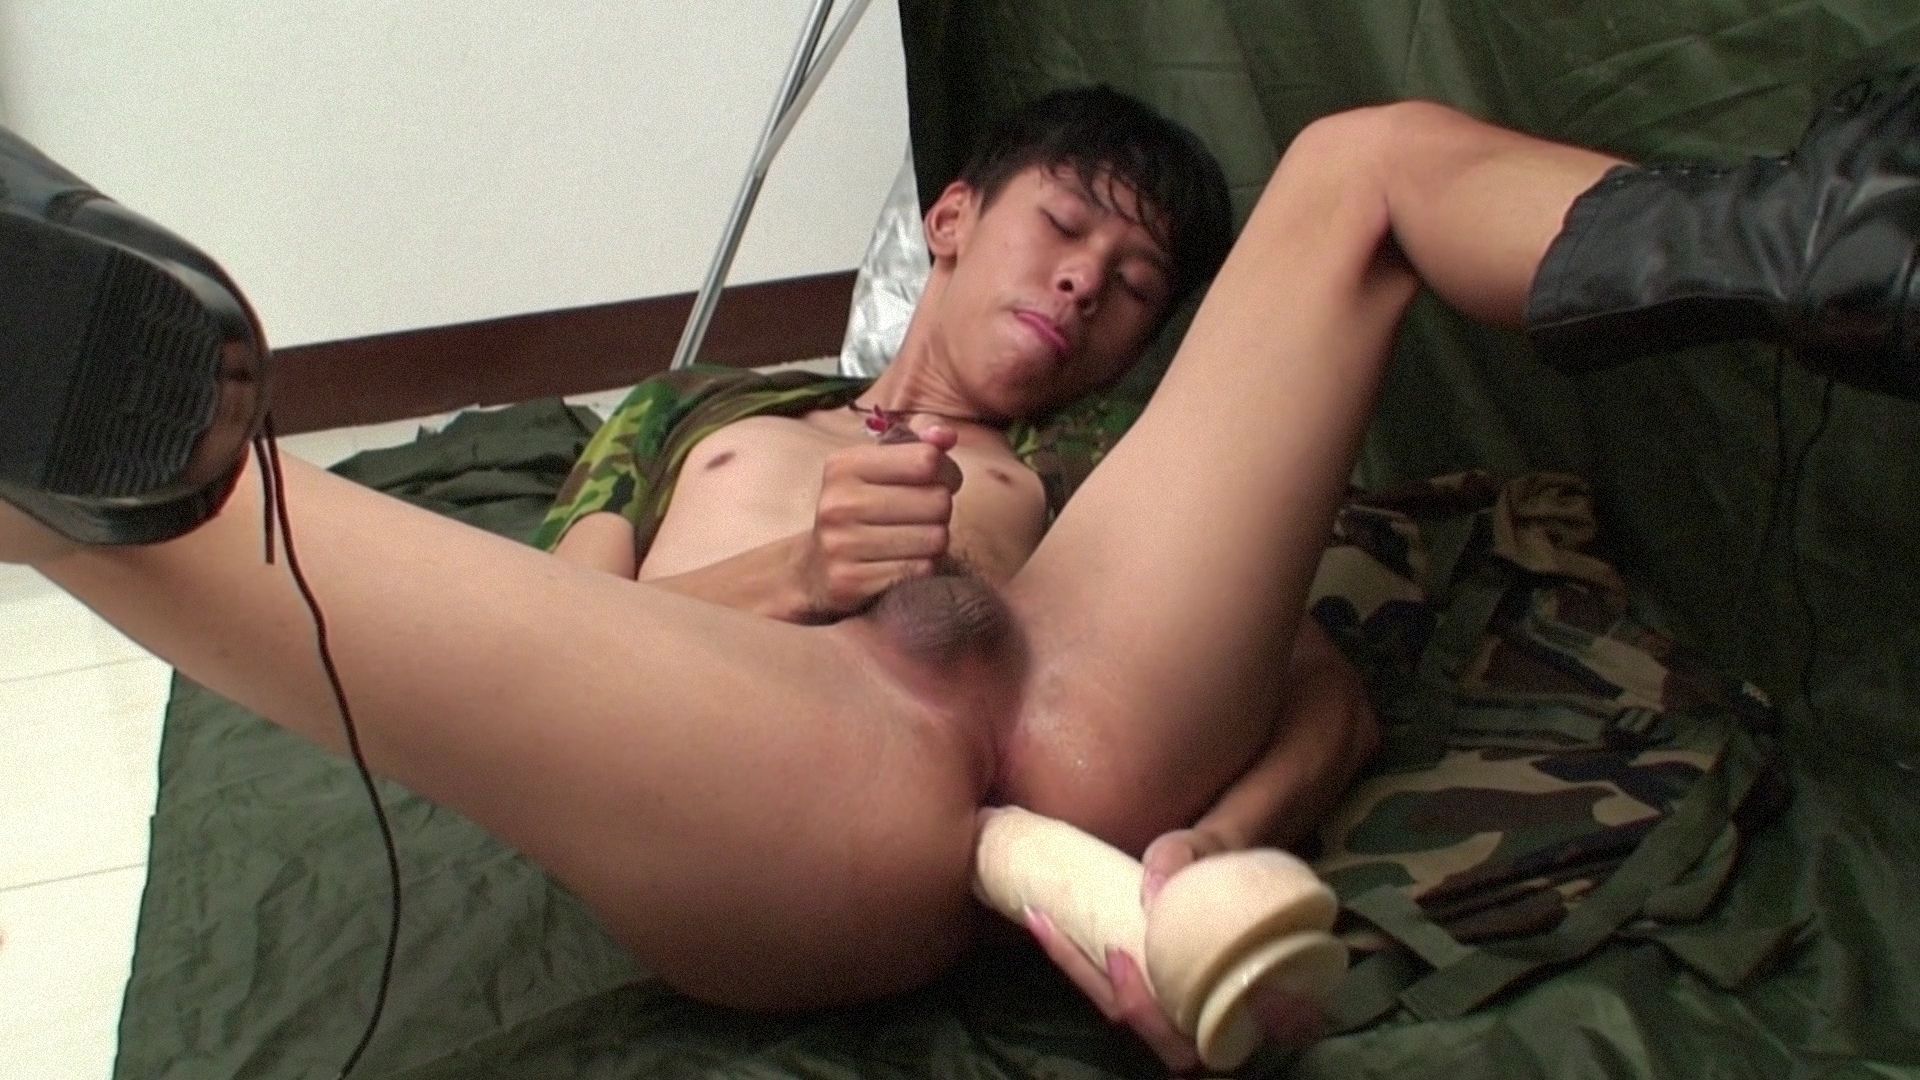 Jacop Beating Off - AsiaBoy Girls, into gangbang &. cumswallowing 1 video